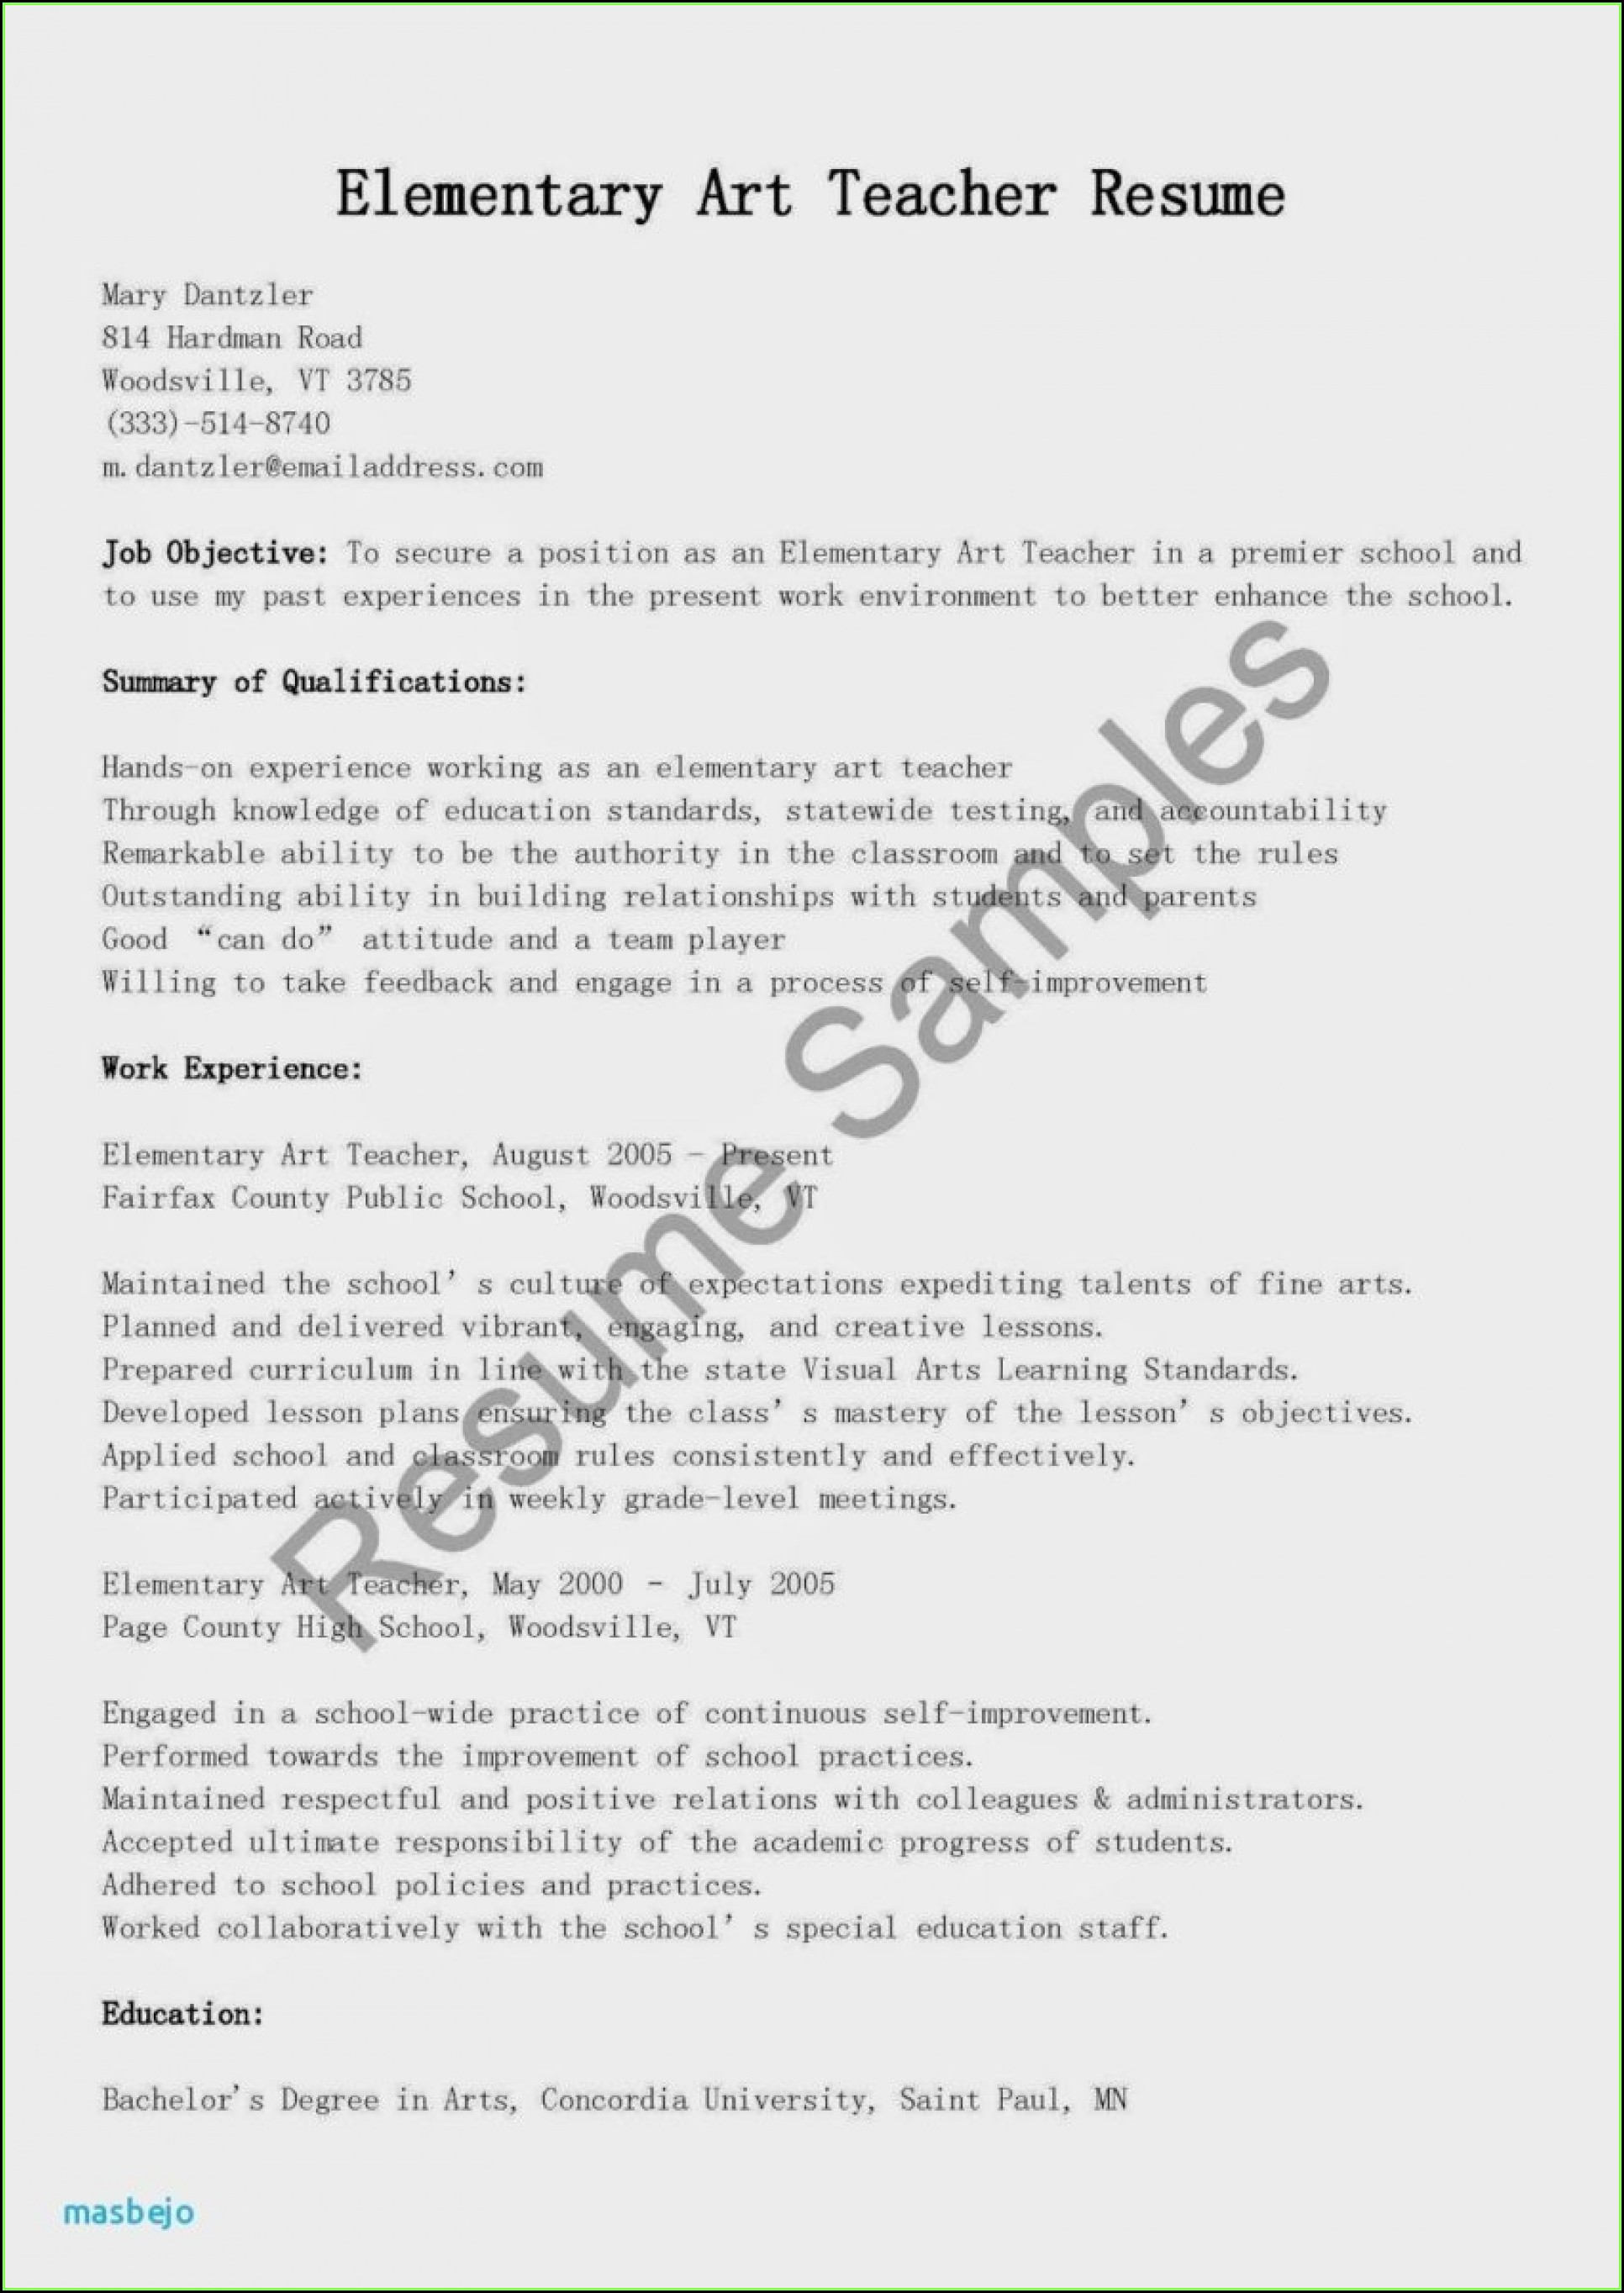 Indian Teacher Resume Format In Word Free Download